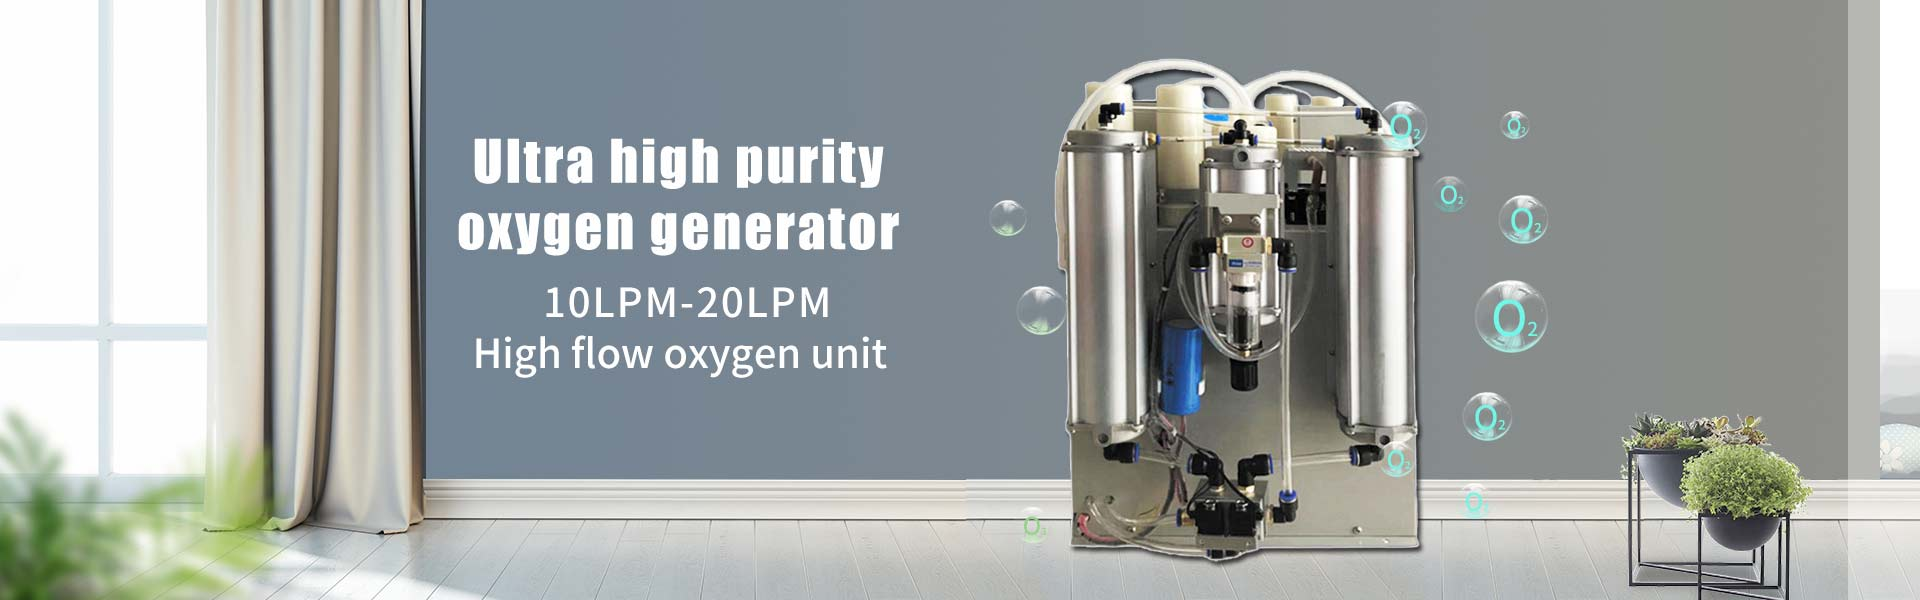 High purity oxygen generator 20LPM